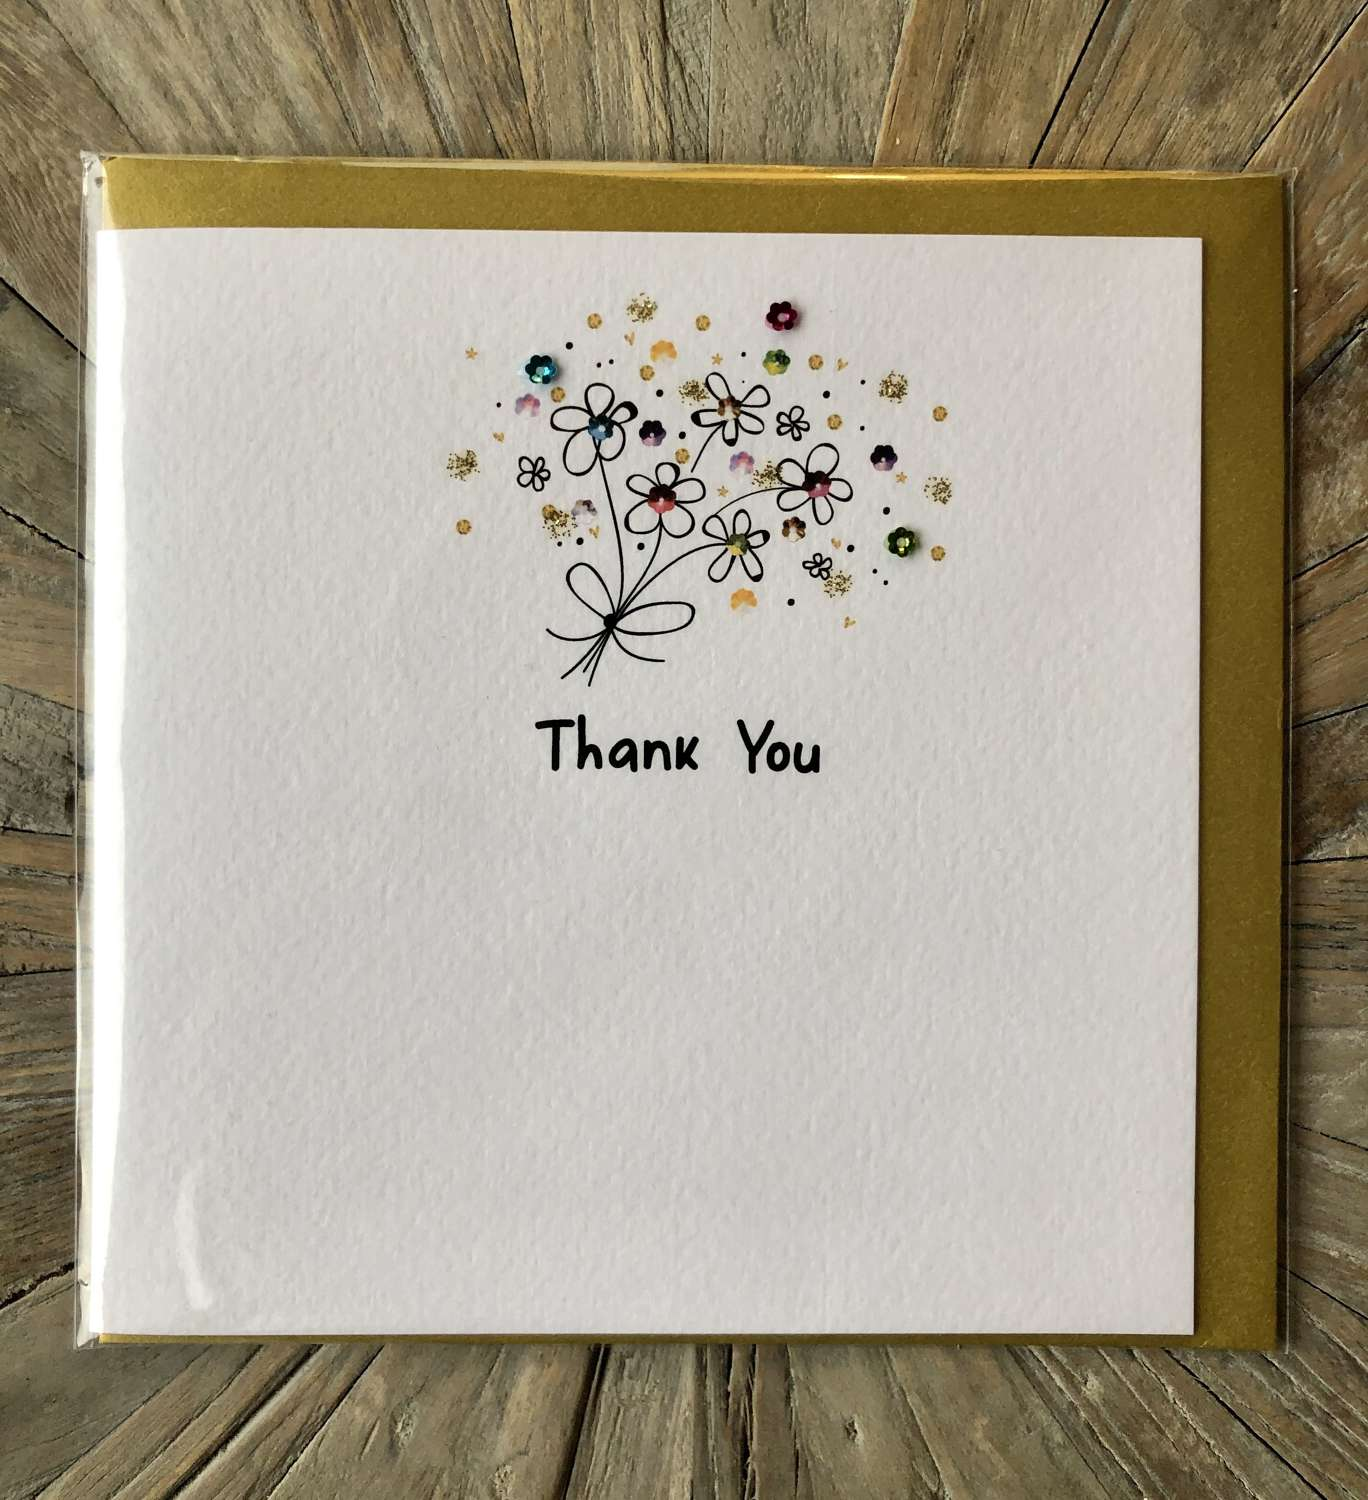 Thank You Card.